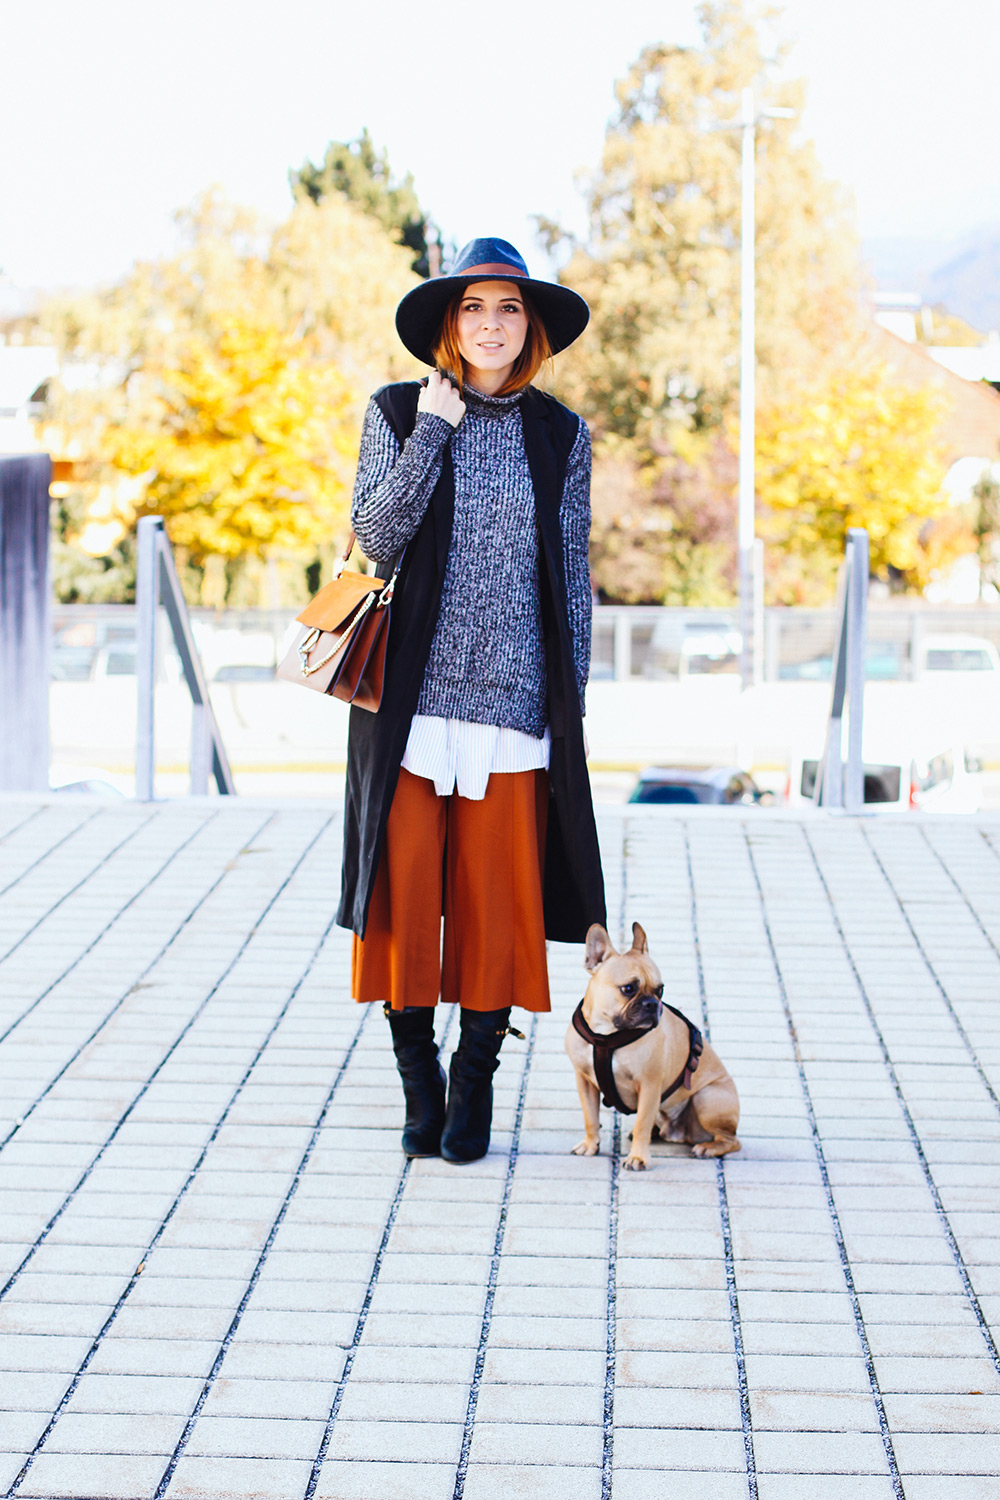 who is mocca, modeblog, fashionblog, midi boots outfit, midiboots kombinieren, culotte marsala, river island, layering outfit, lagenlook, chloe faye, frenchie, innsbruck streetstyle, whoismocca.com